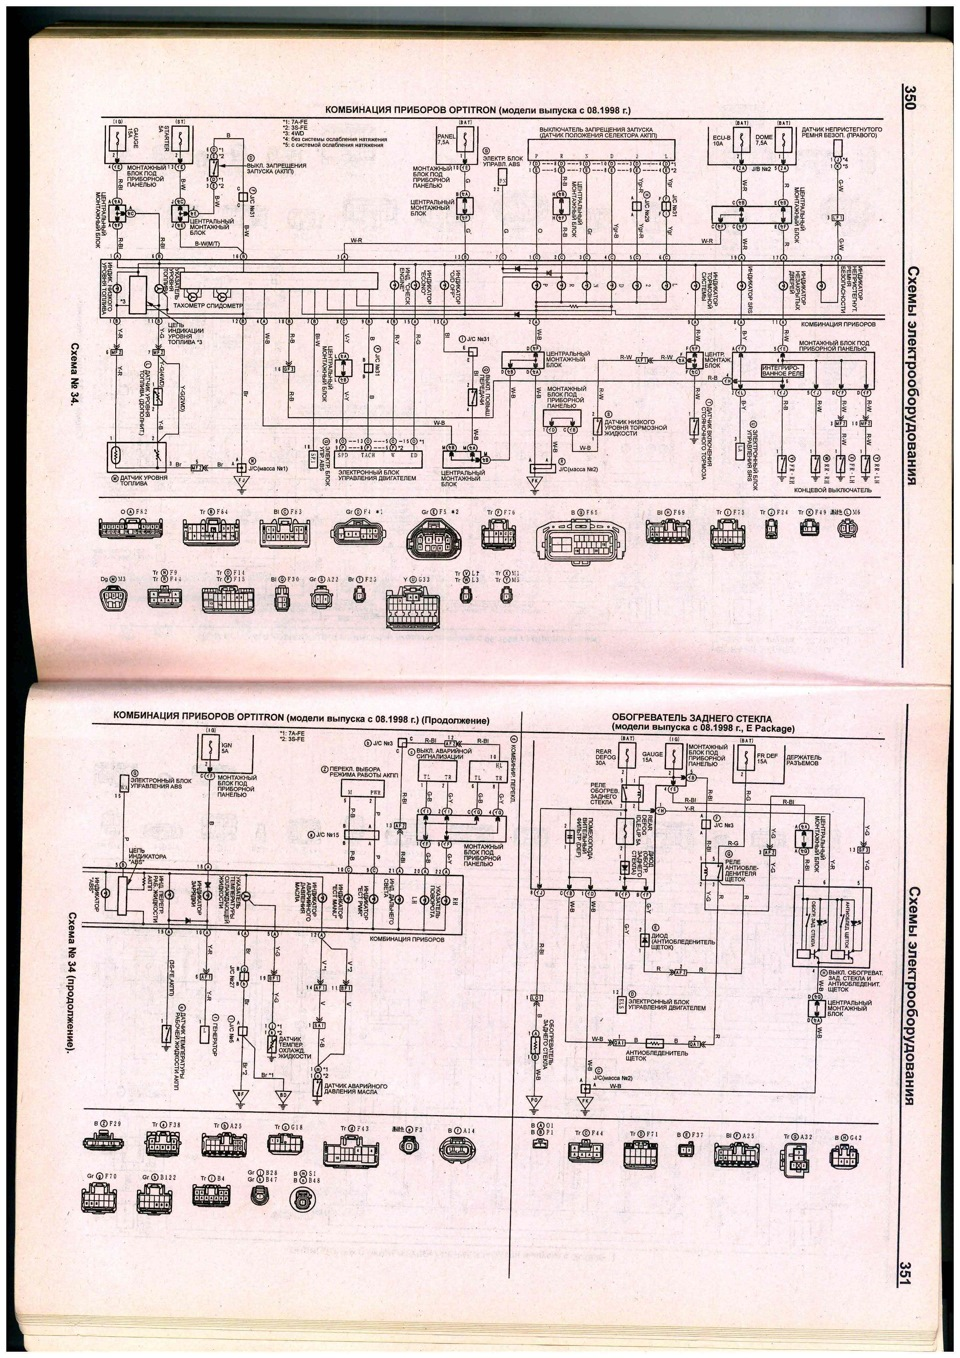 Replacement Of The Device With An Optotron Logbook Toyota Carina Gaia Wiring Diagram